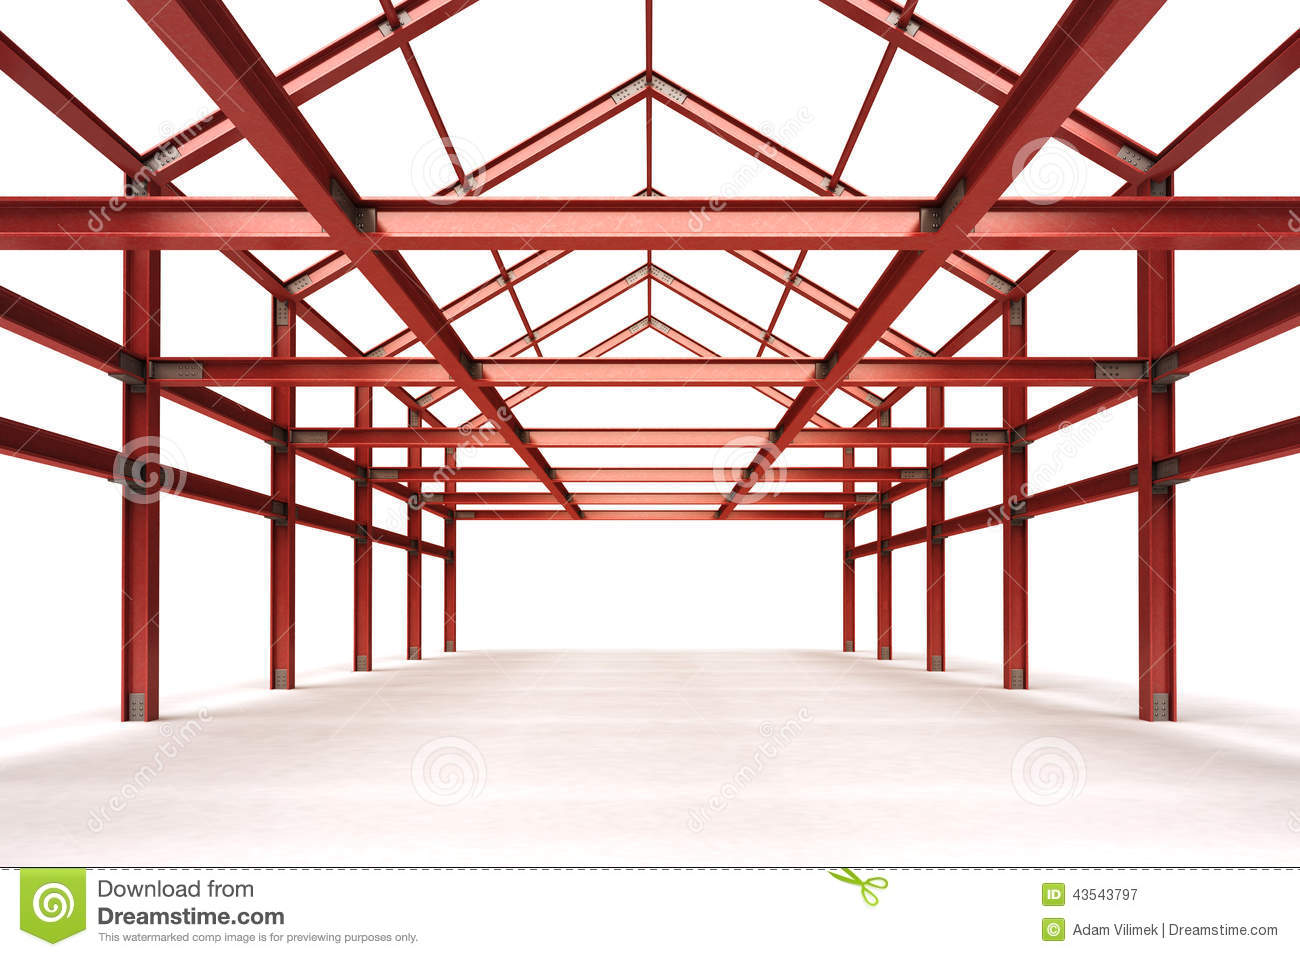 Red Steel Framework Building Indoor Perspective View Stock